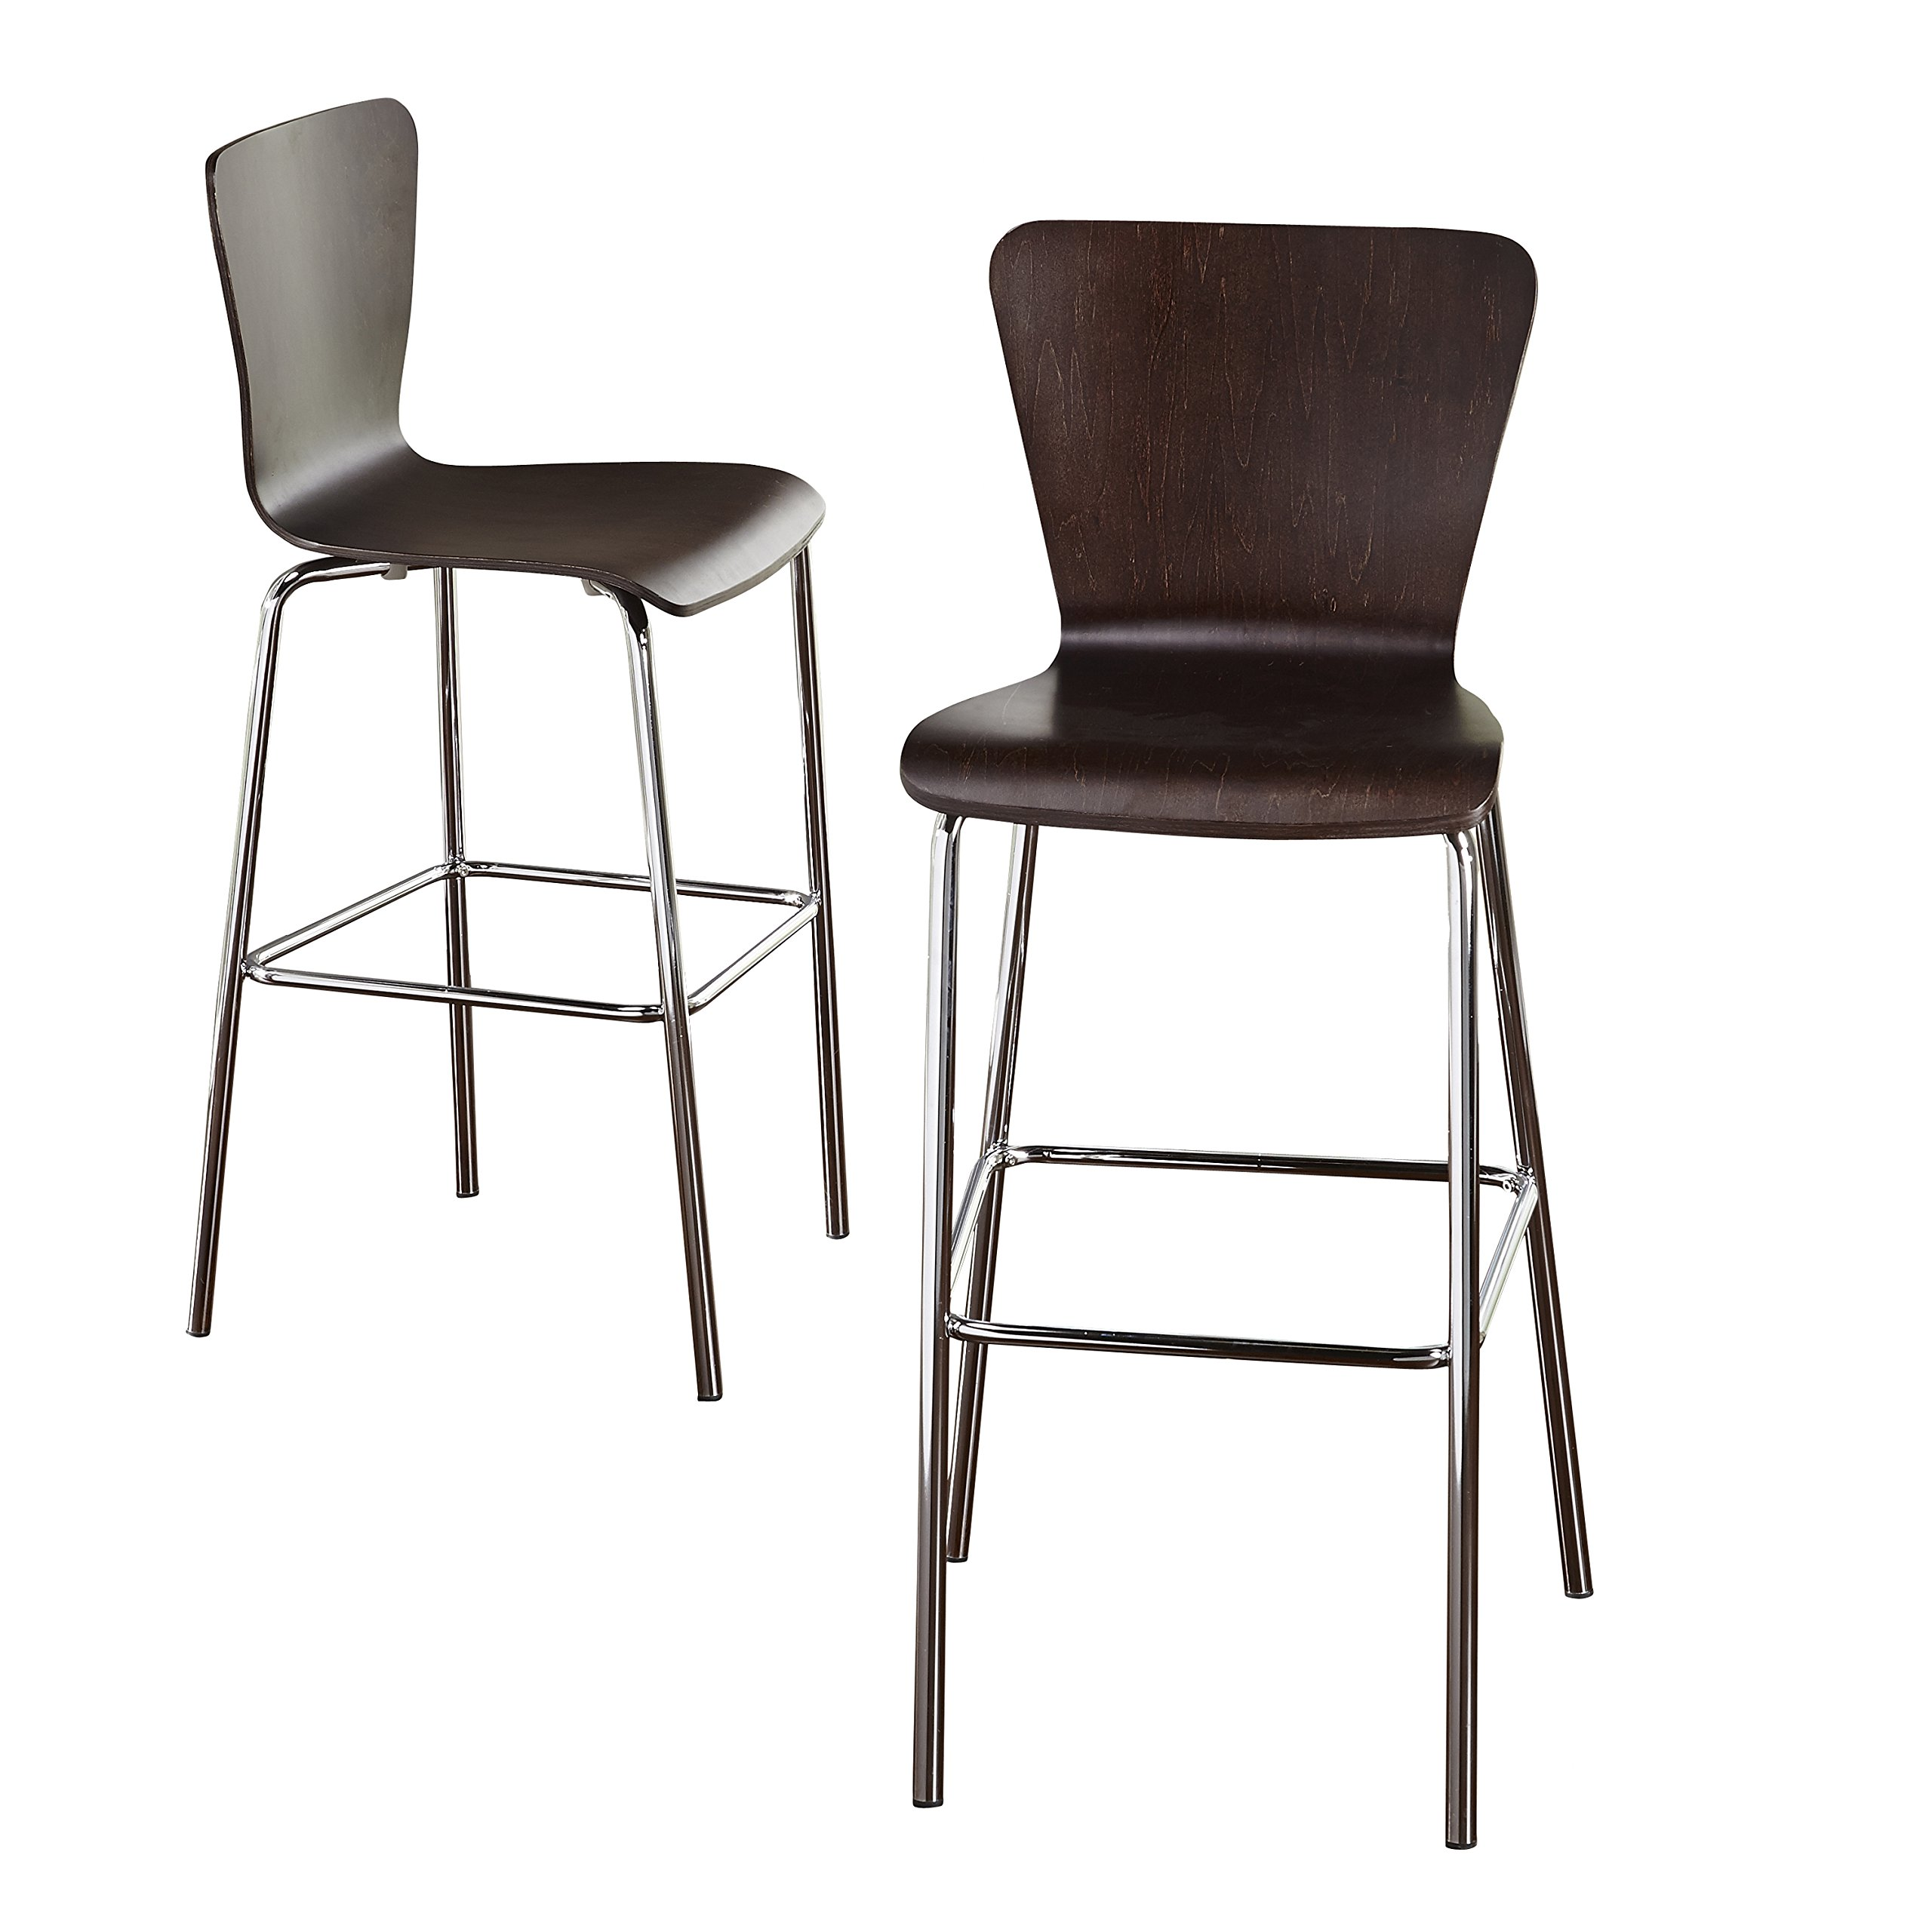 Target Marketing Systems Pisa Collection Modern Armless Counter Stools with Chrome Plated Legs and Concave Back Design, Set of 2, 30'', Espresso/Silver by Target Marketing Systems